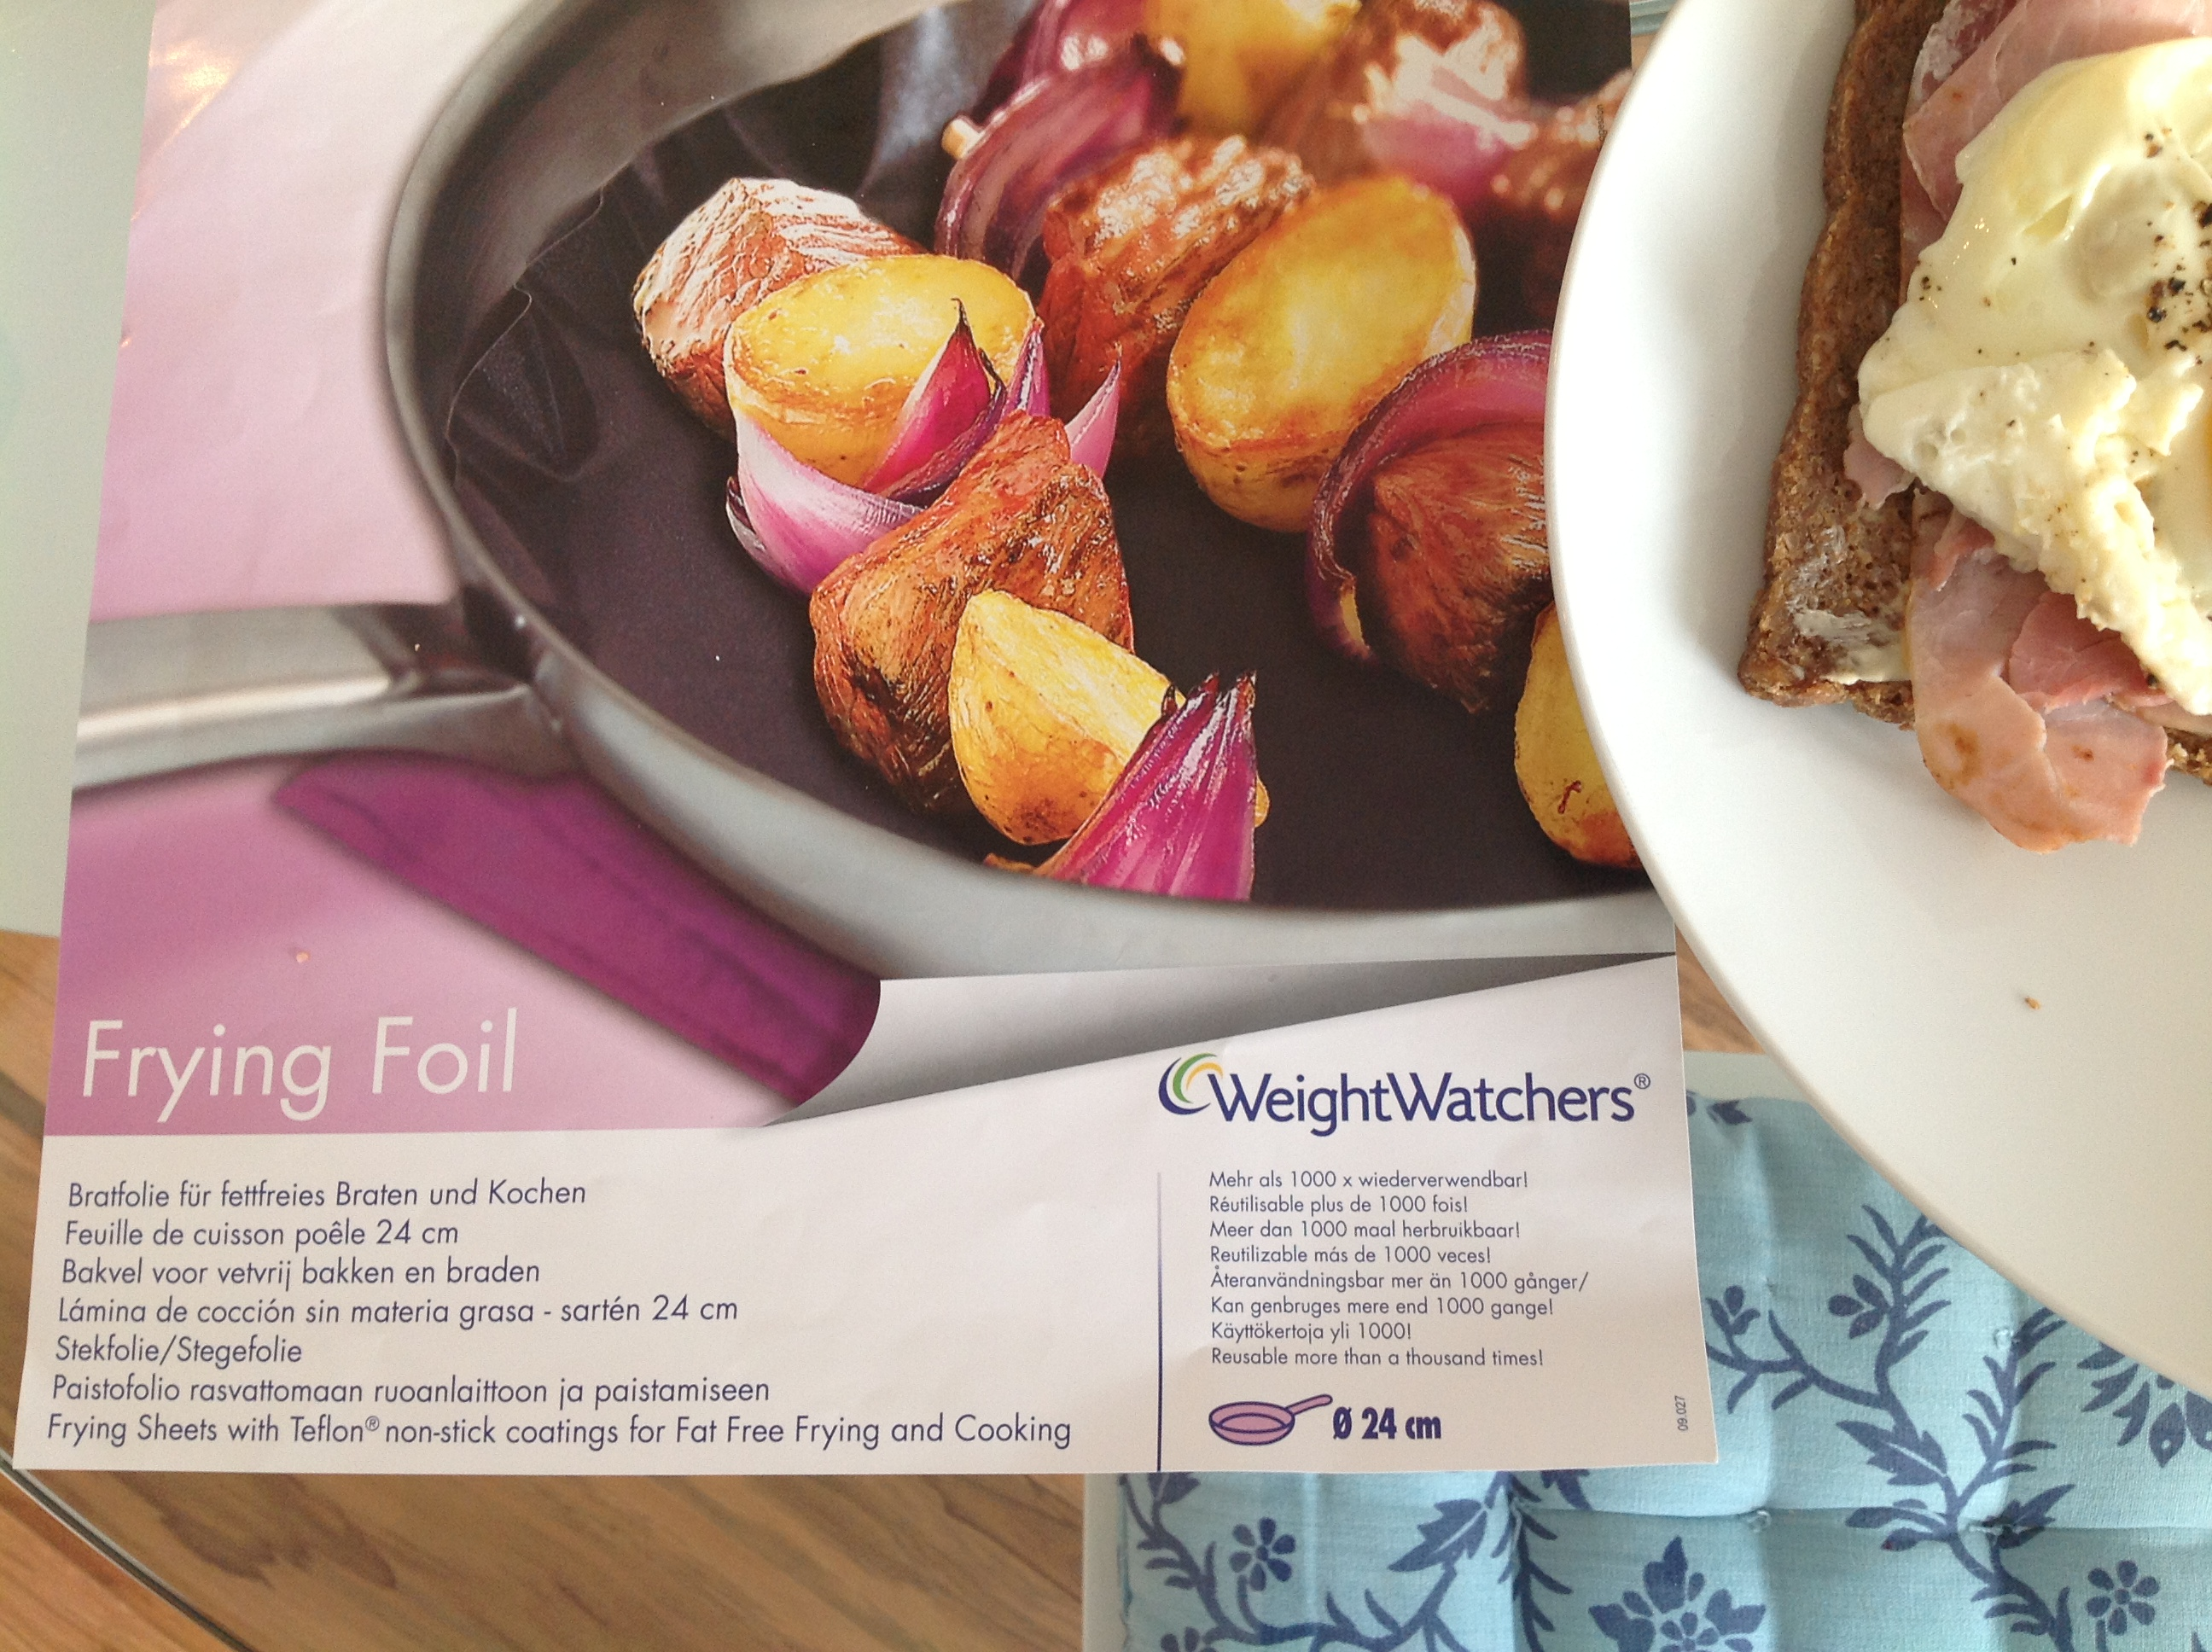 WeightWatchers Brat- und Backfolie - ein Produkttest